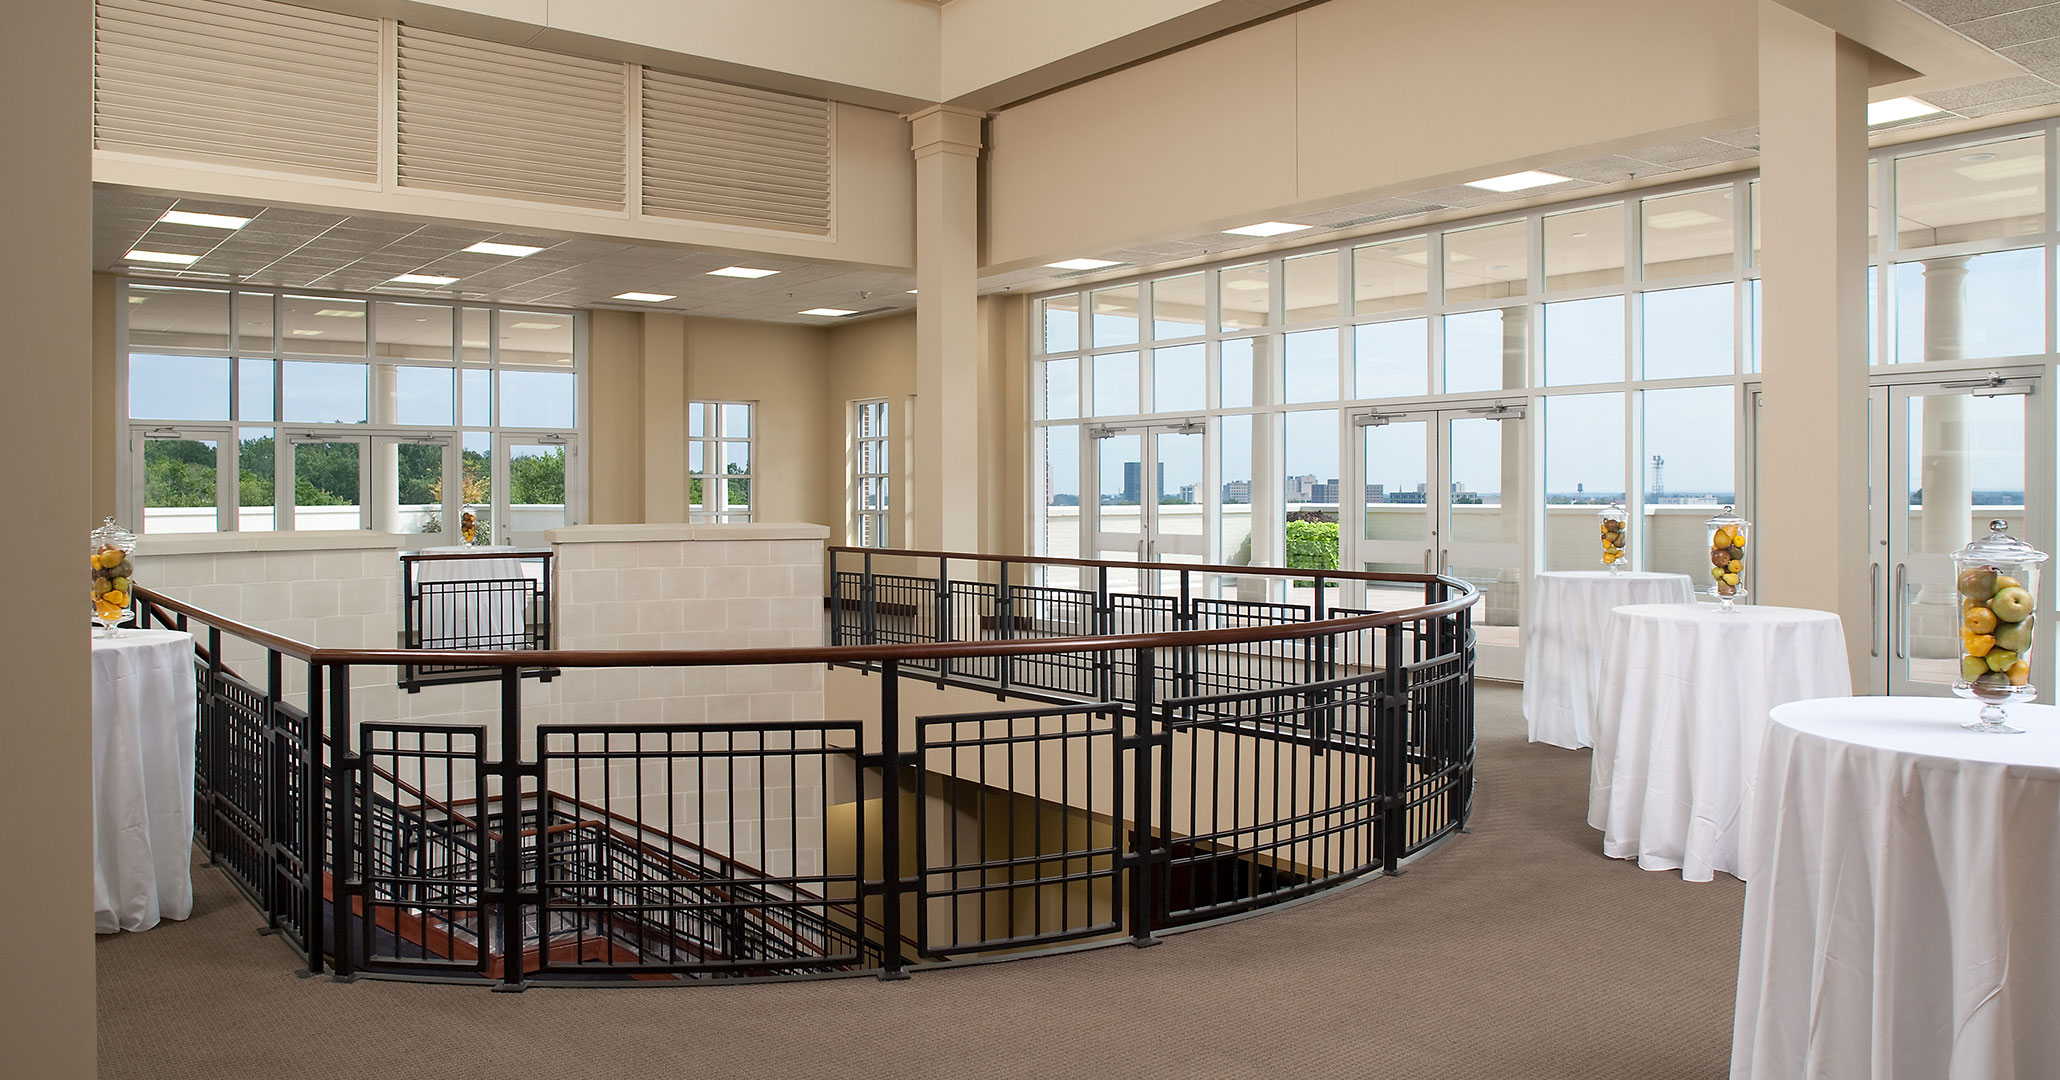 North Augusta Municipal Center worked with Boudreaux architects to design impactful spaces.